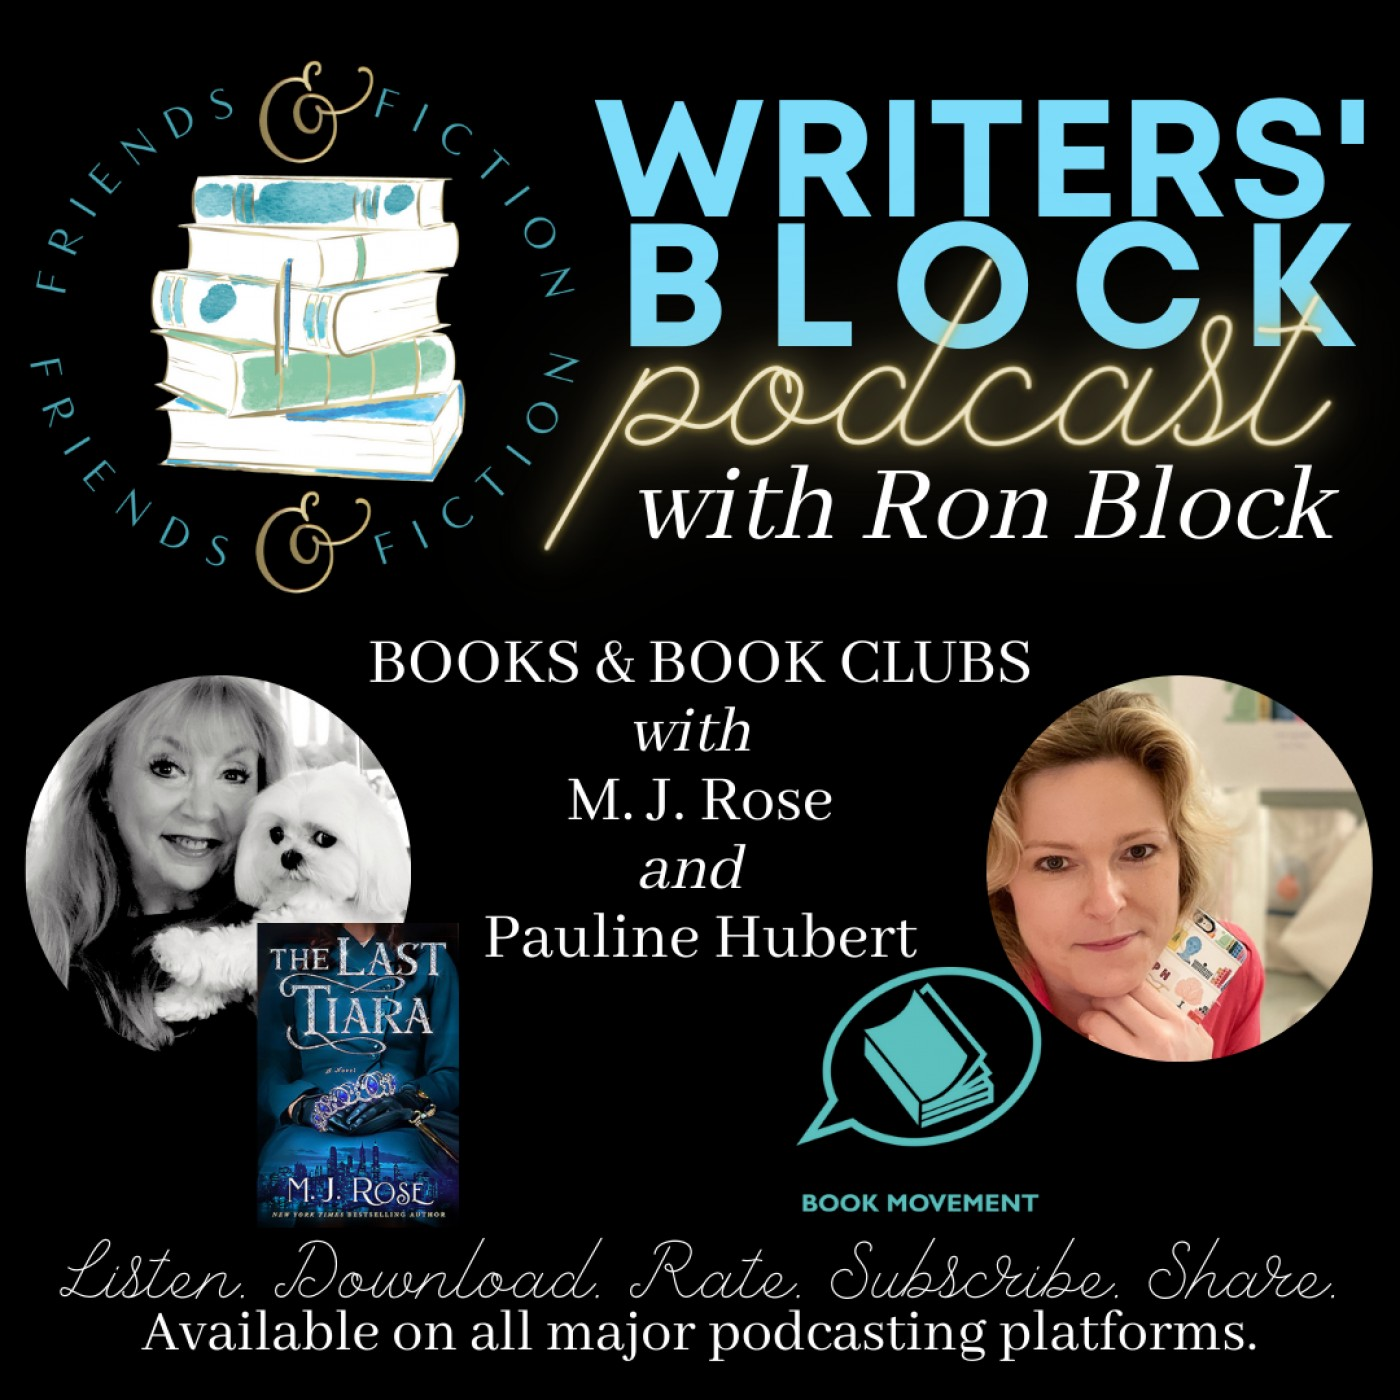 WB S1E6: Ron Block with MJ Rose and Pauline Hubert